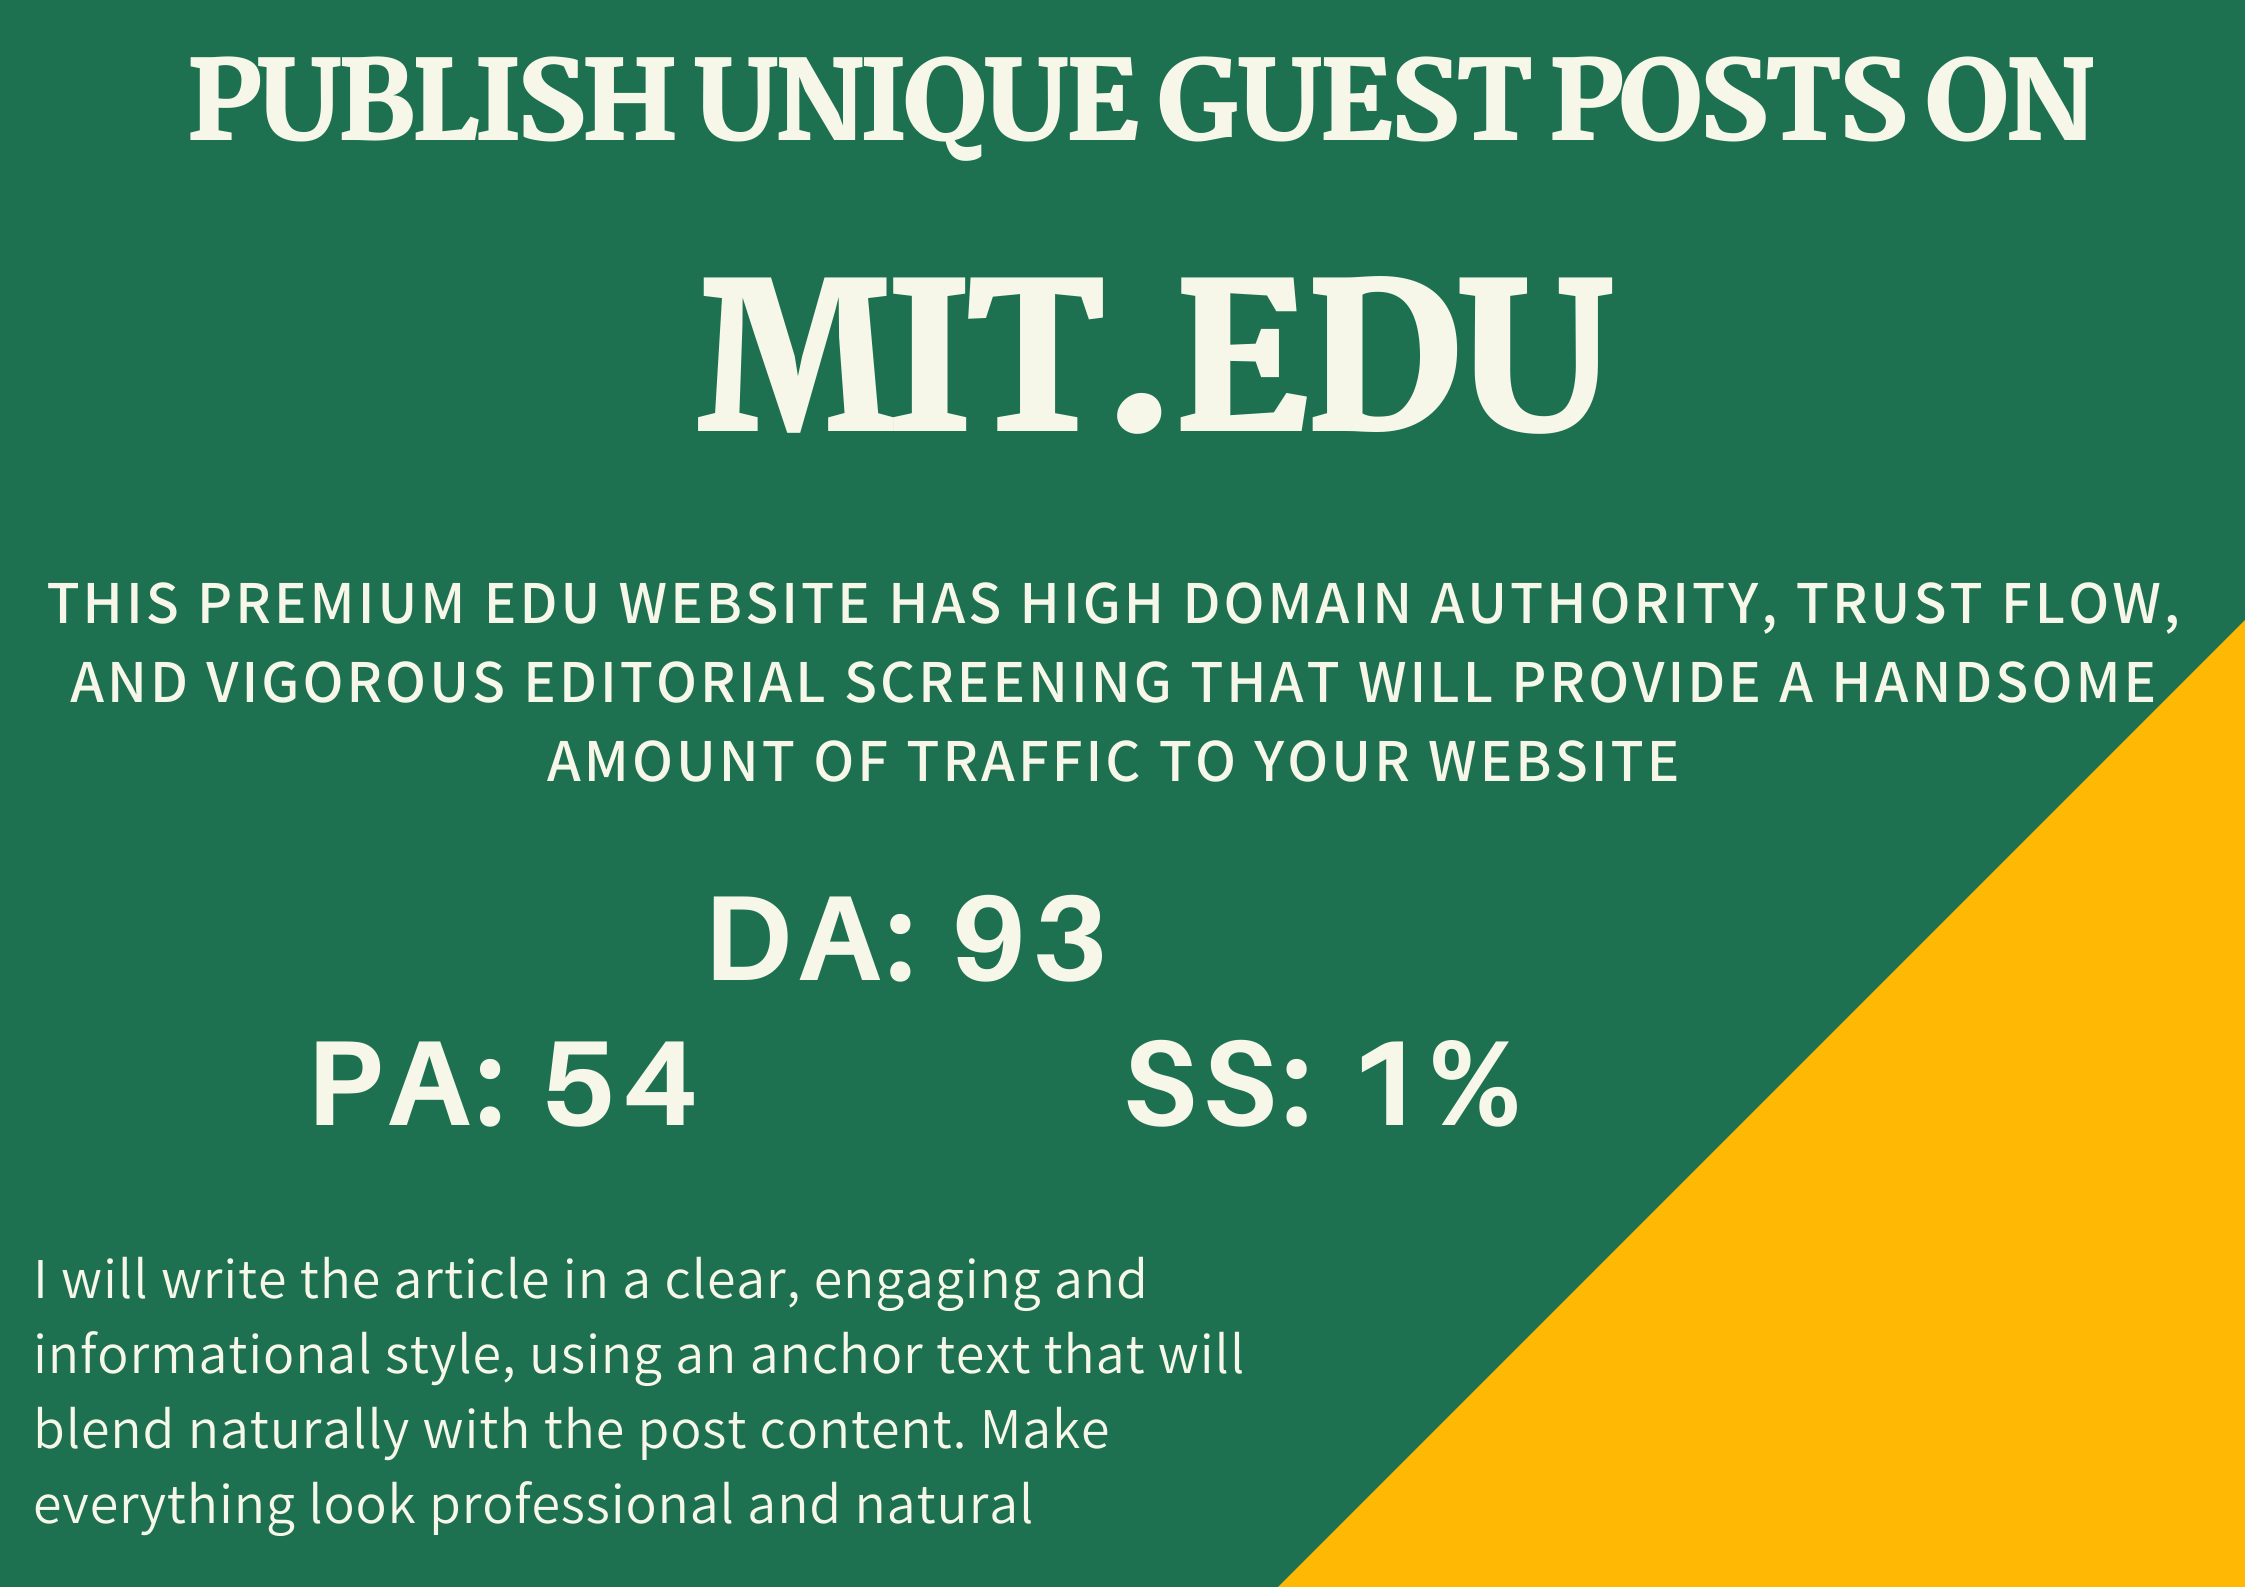 I will write and publish unique guest posts on High Authority EDU domains DA- 93 PA 54